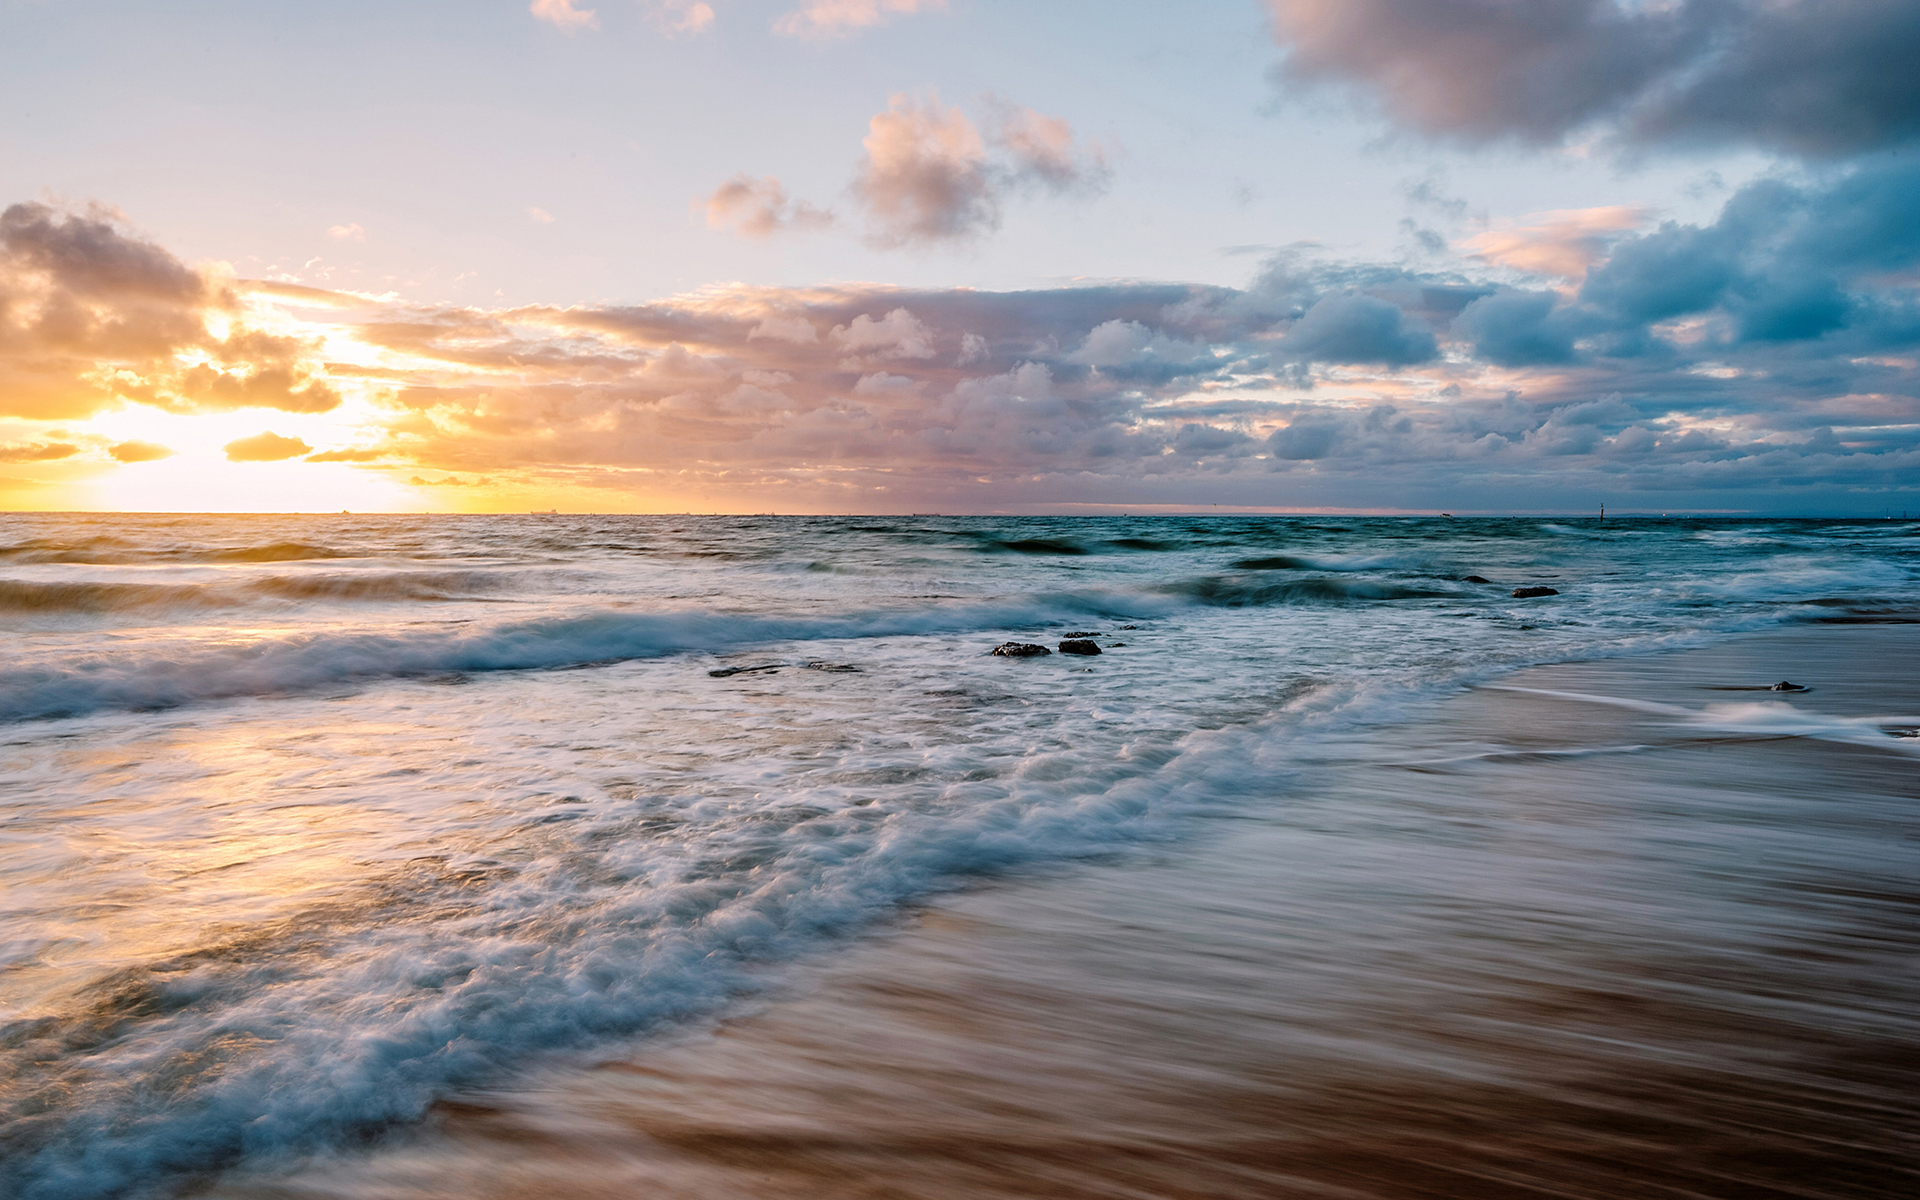 Image Result For Sunset Beach Wallpapers Beautiful Sunset Beach Wallpapers Beach Wallpaper Night Wallpaper Crash